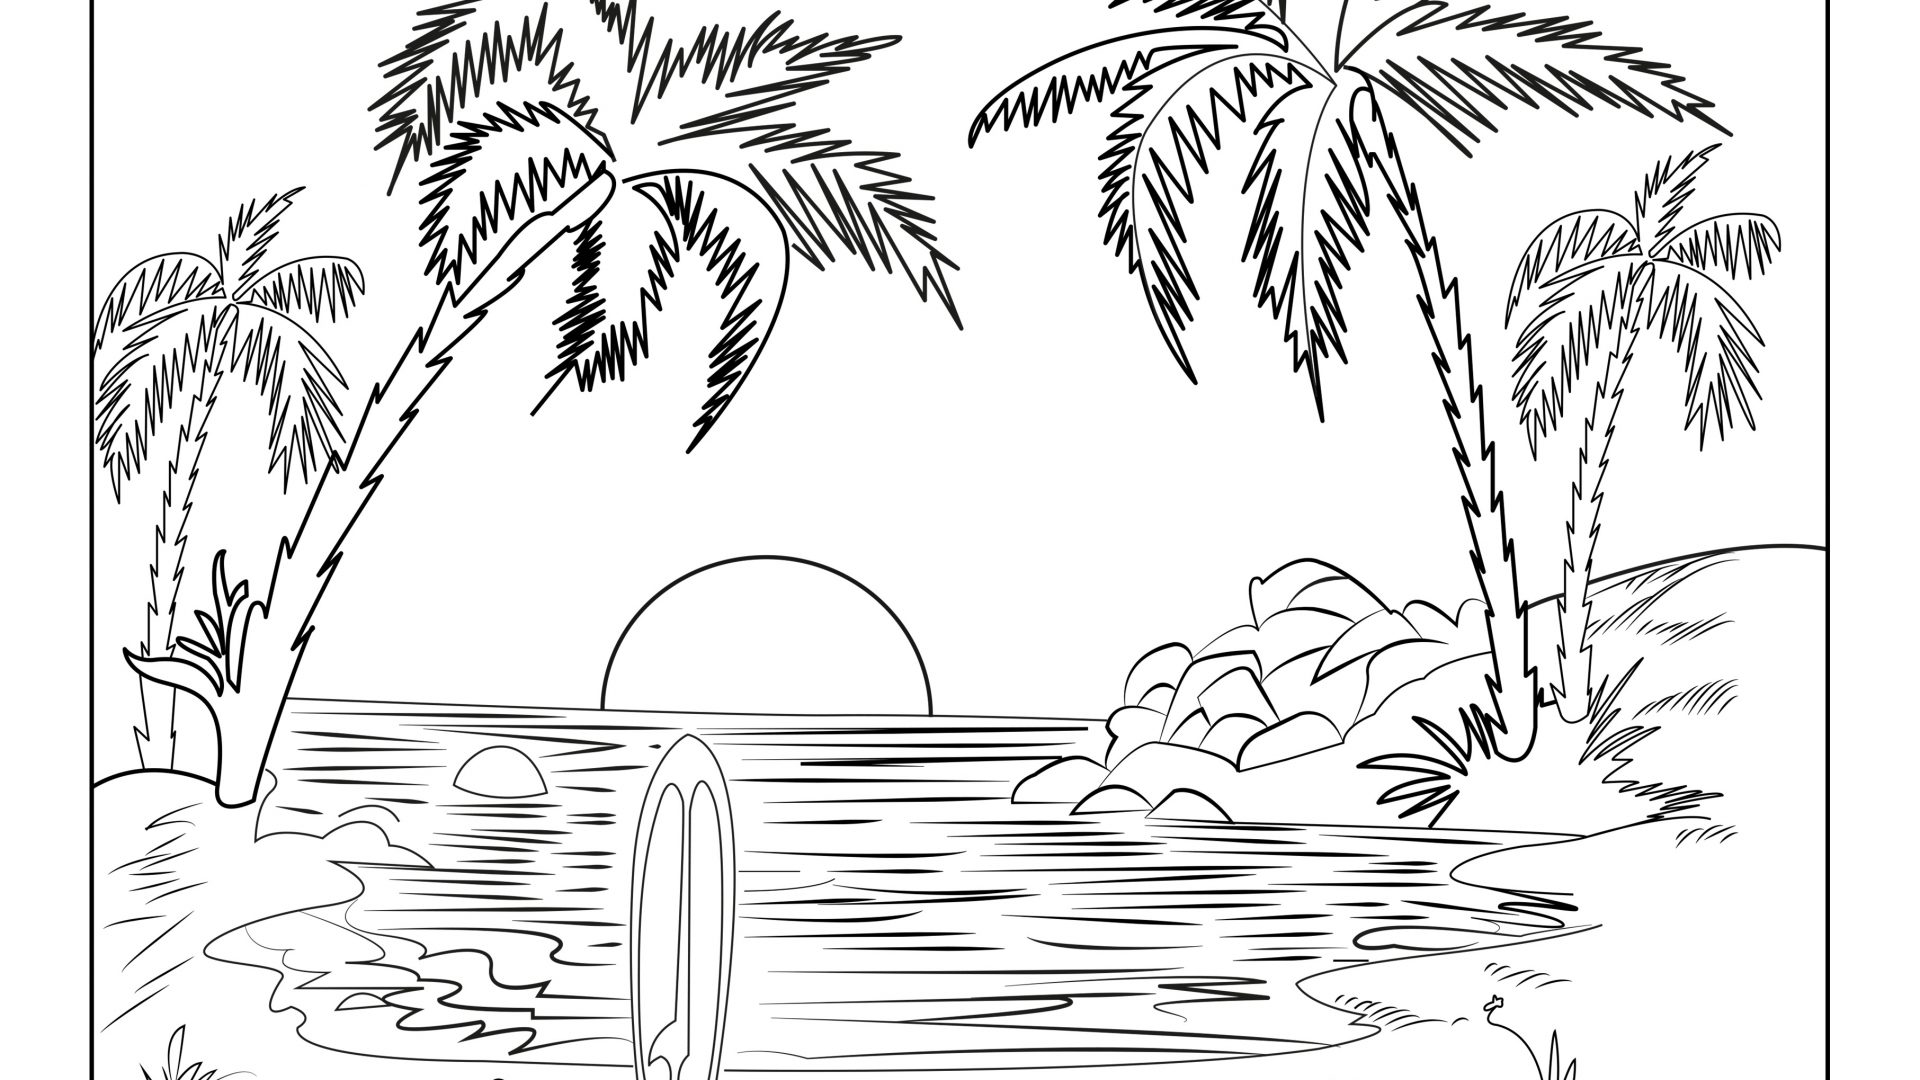 Winter Landscape Coloring Pages at GetDrawings.com | Free ...